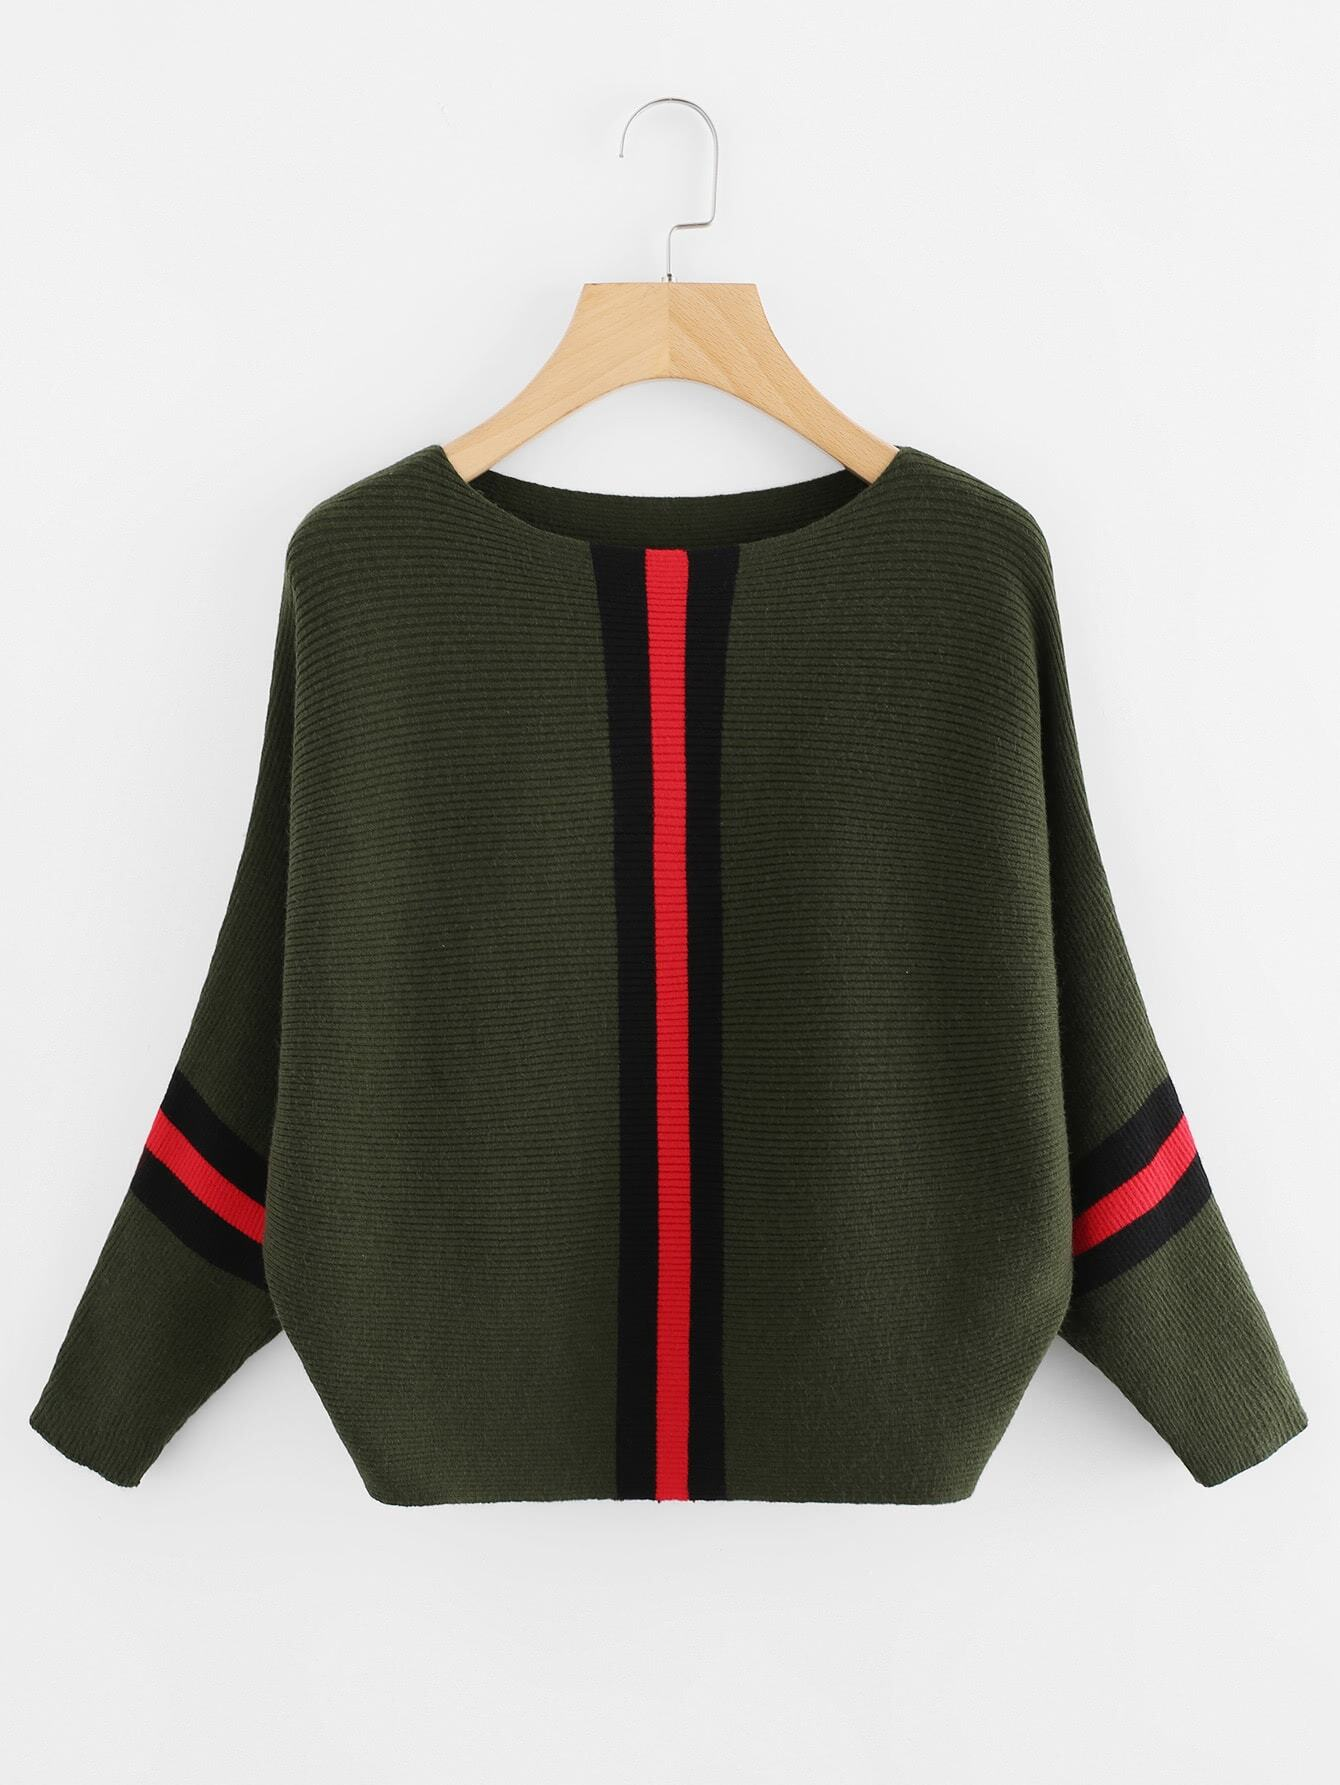 Contrast Striped Panel Ribbed Sweater sweater171013002